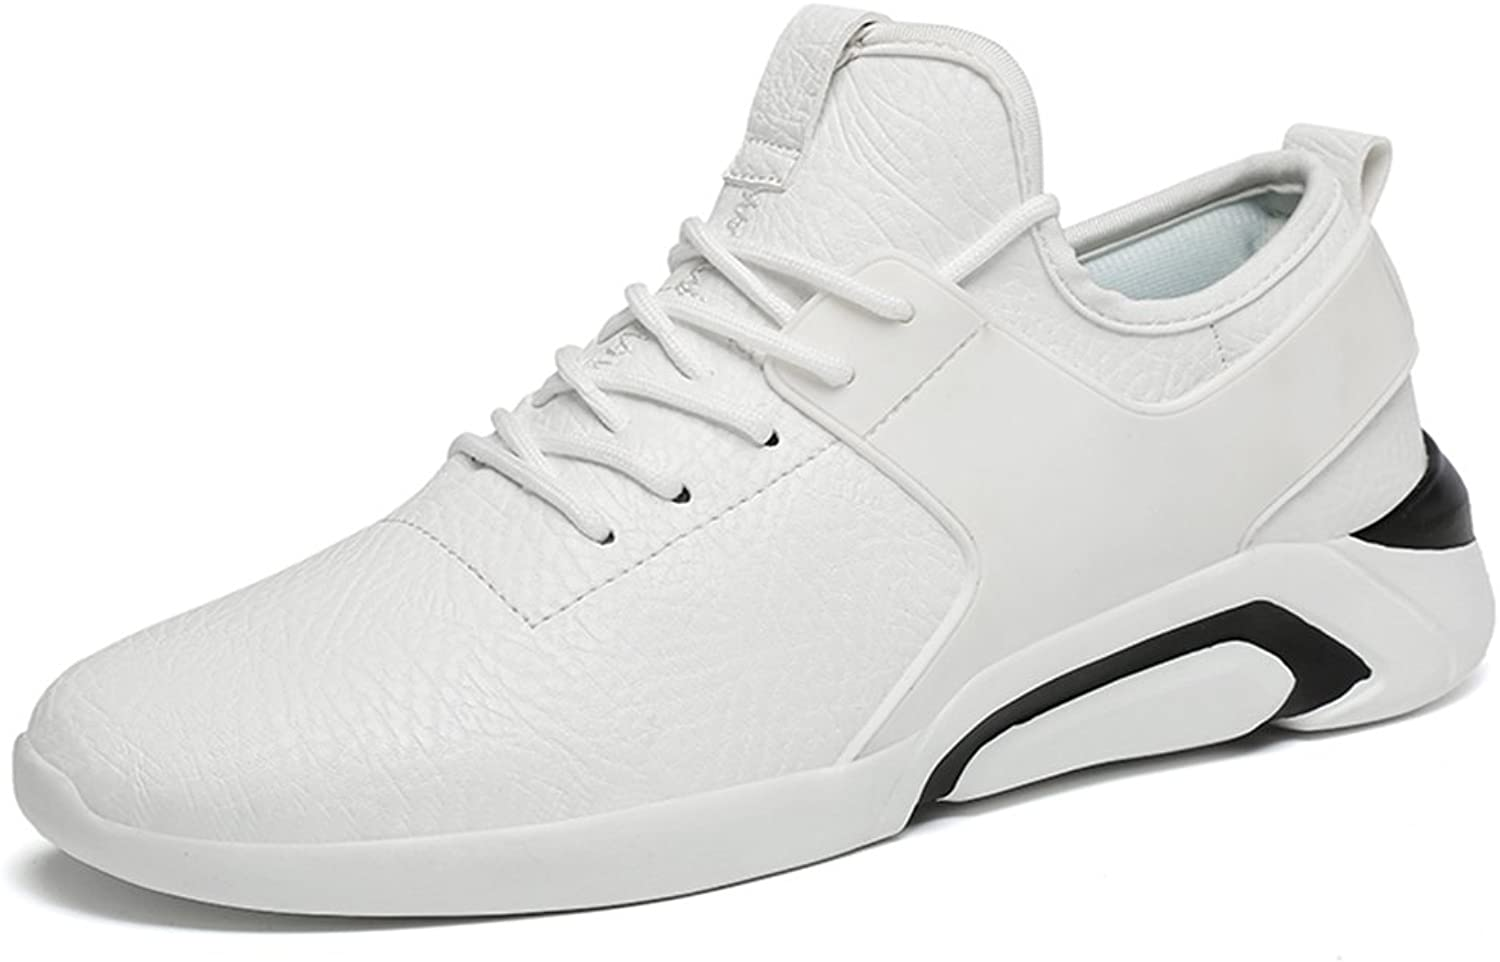 Shangruiqi Men's Athletic Sneakers The British Casual Style is All in Fashion with Lightweight Round Top and Low Top Running shoes Anti-Wear (color   White, Size   5 UK)